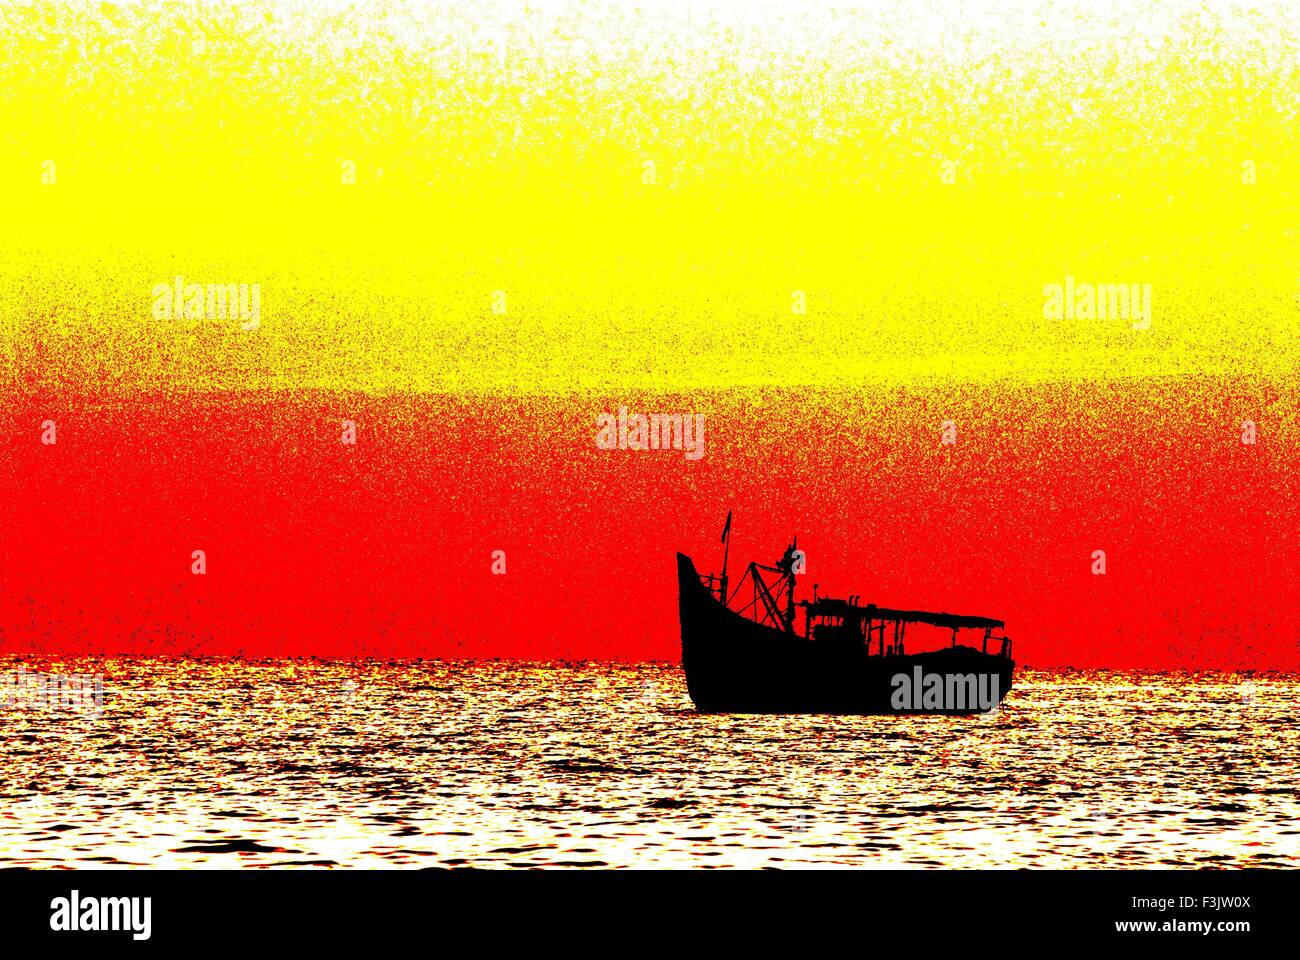 Fishing Activity Colorful Sunset with one country fishing boat at Malpe Beach Silhouette Arabian sea Udupi karnataka - Stock Image